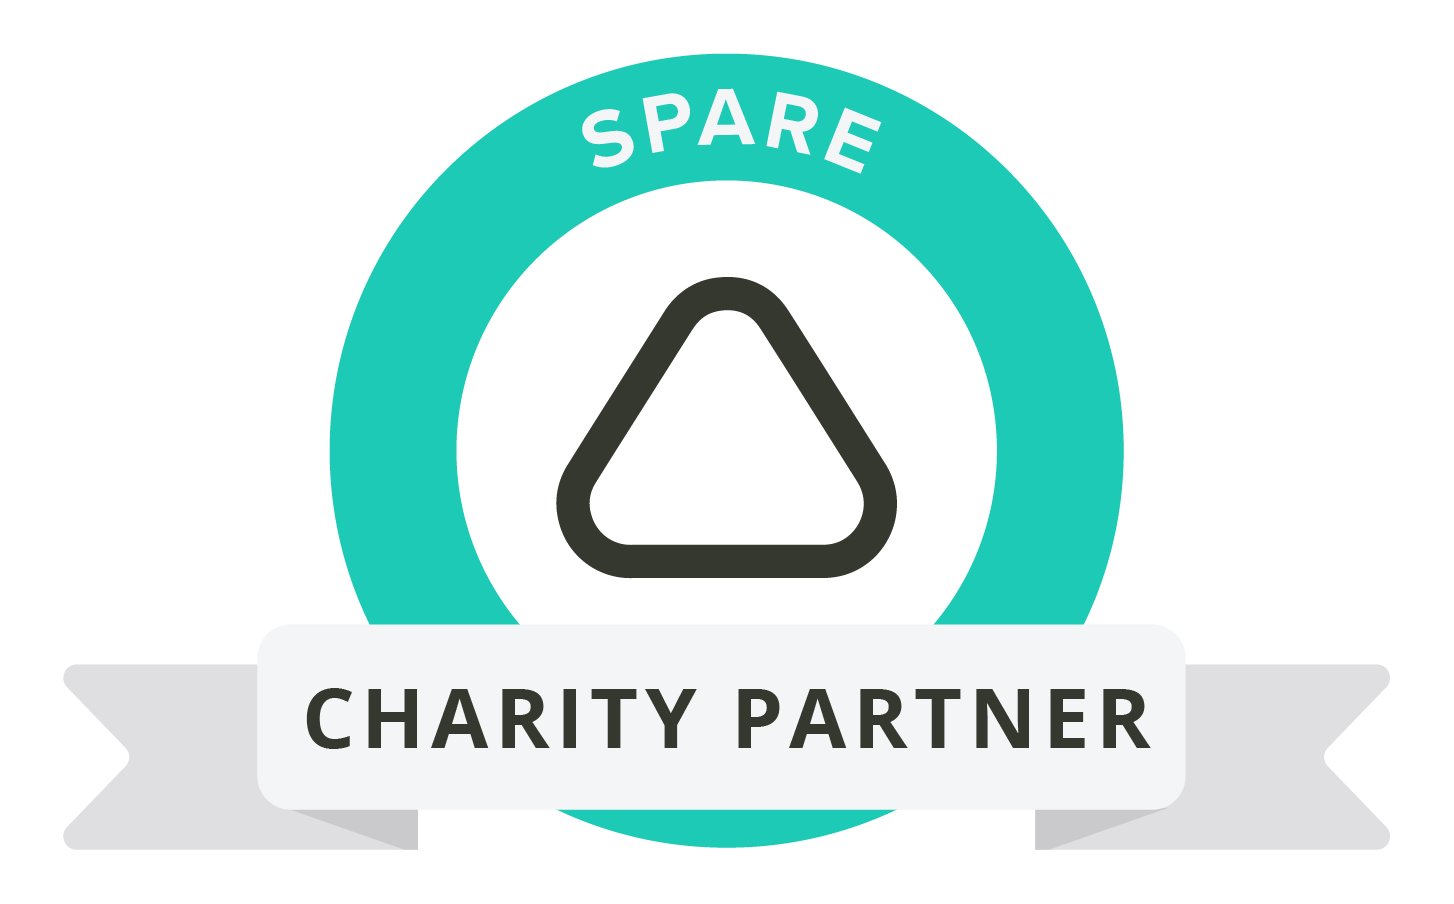 badge-spare-charity-partner